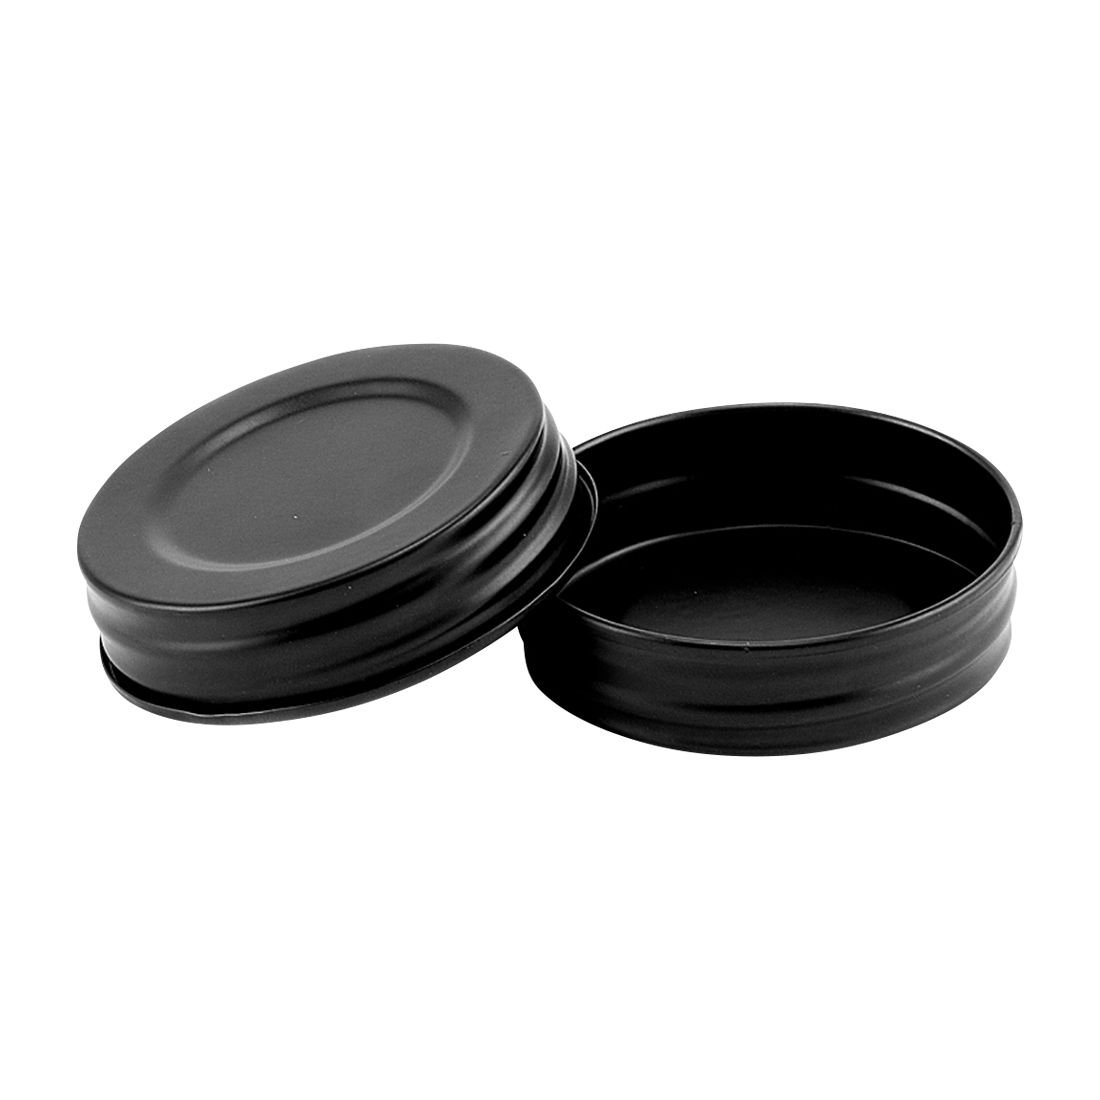 North Mountain Supply Regular Mouth Metal One Piece Mason Jar Unlined Lids - Pack of 72 - Olde Tyme Black